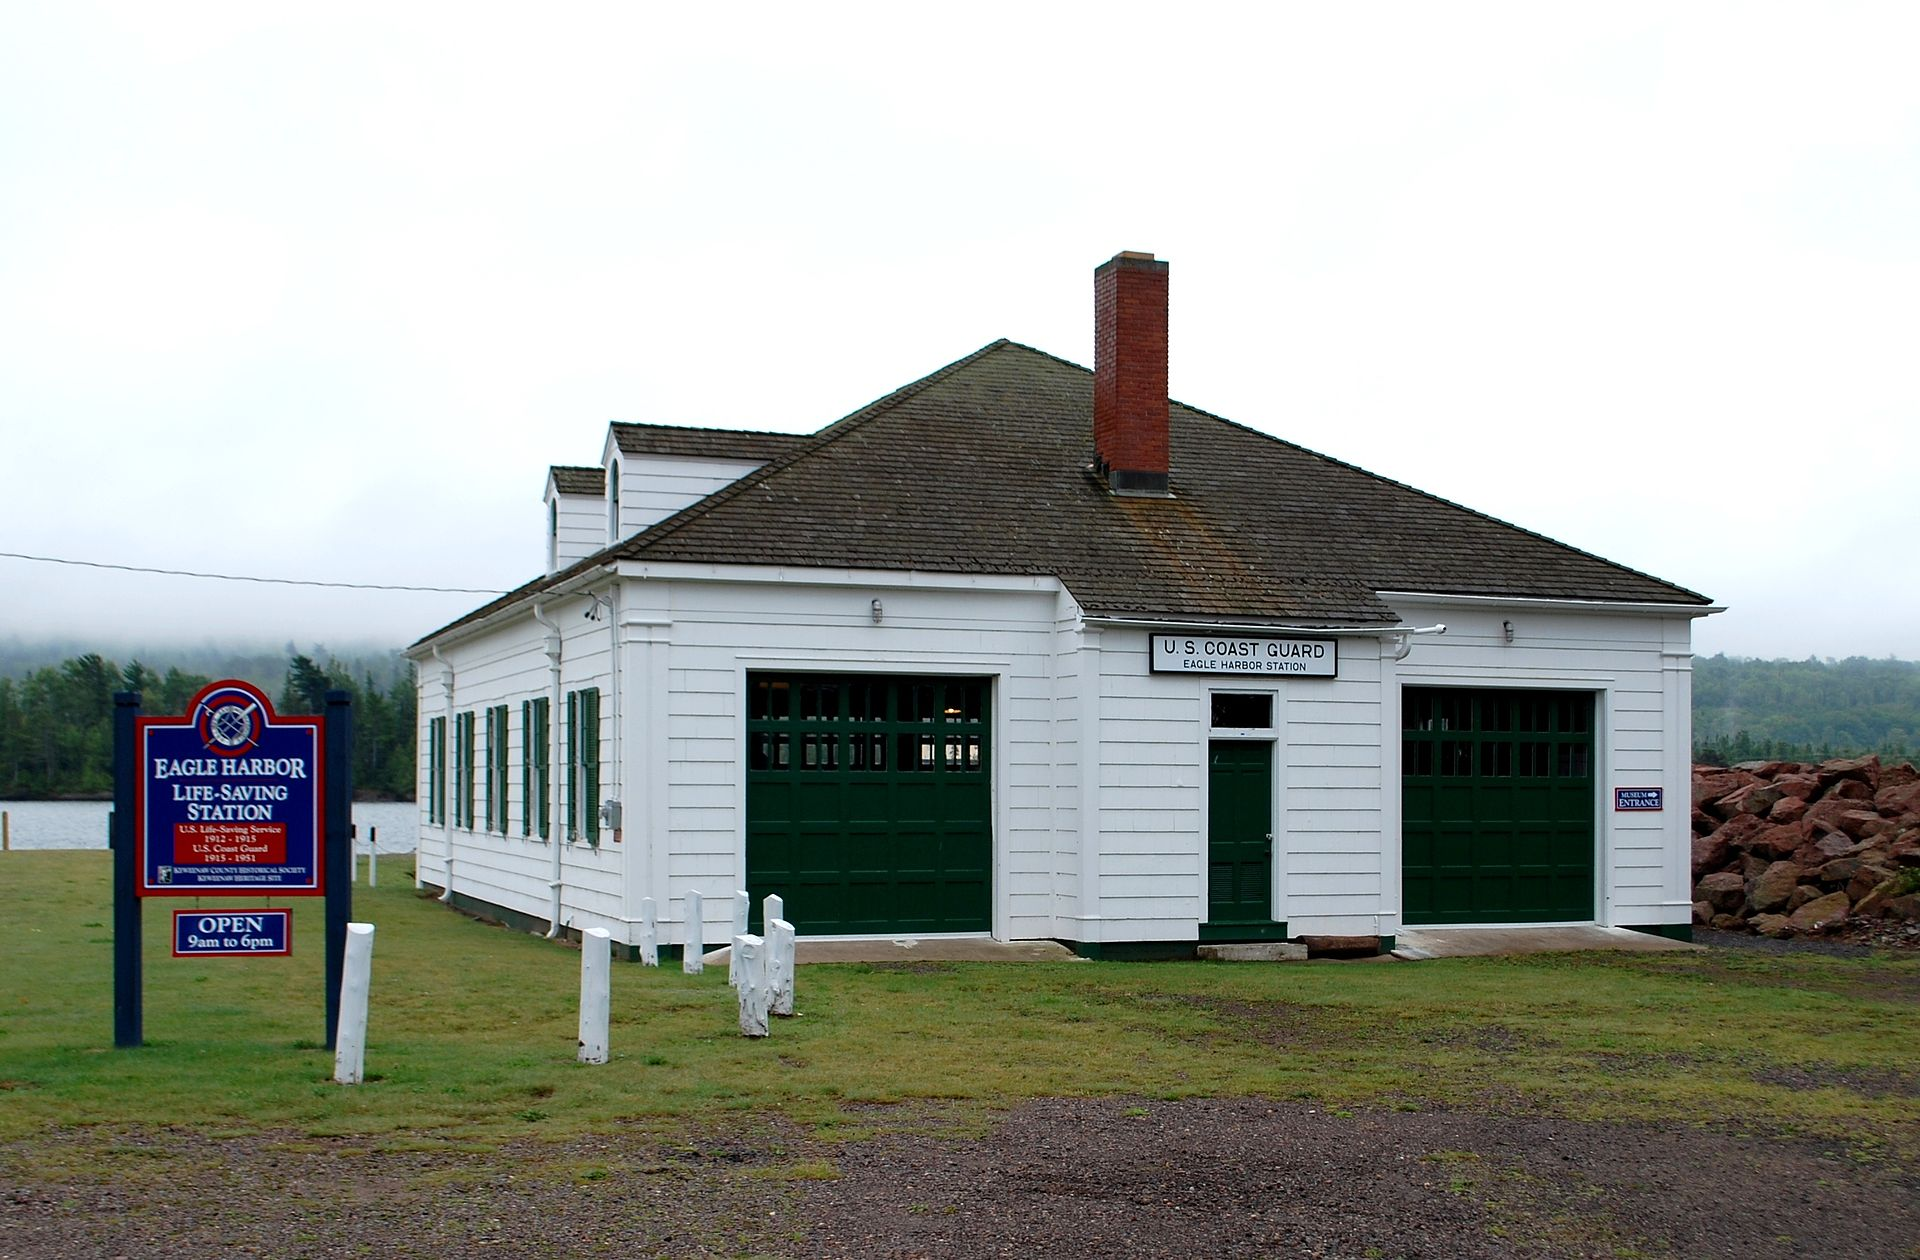 The life-saving station museum